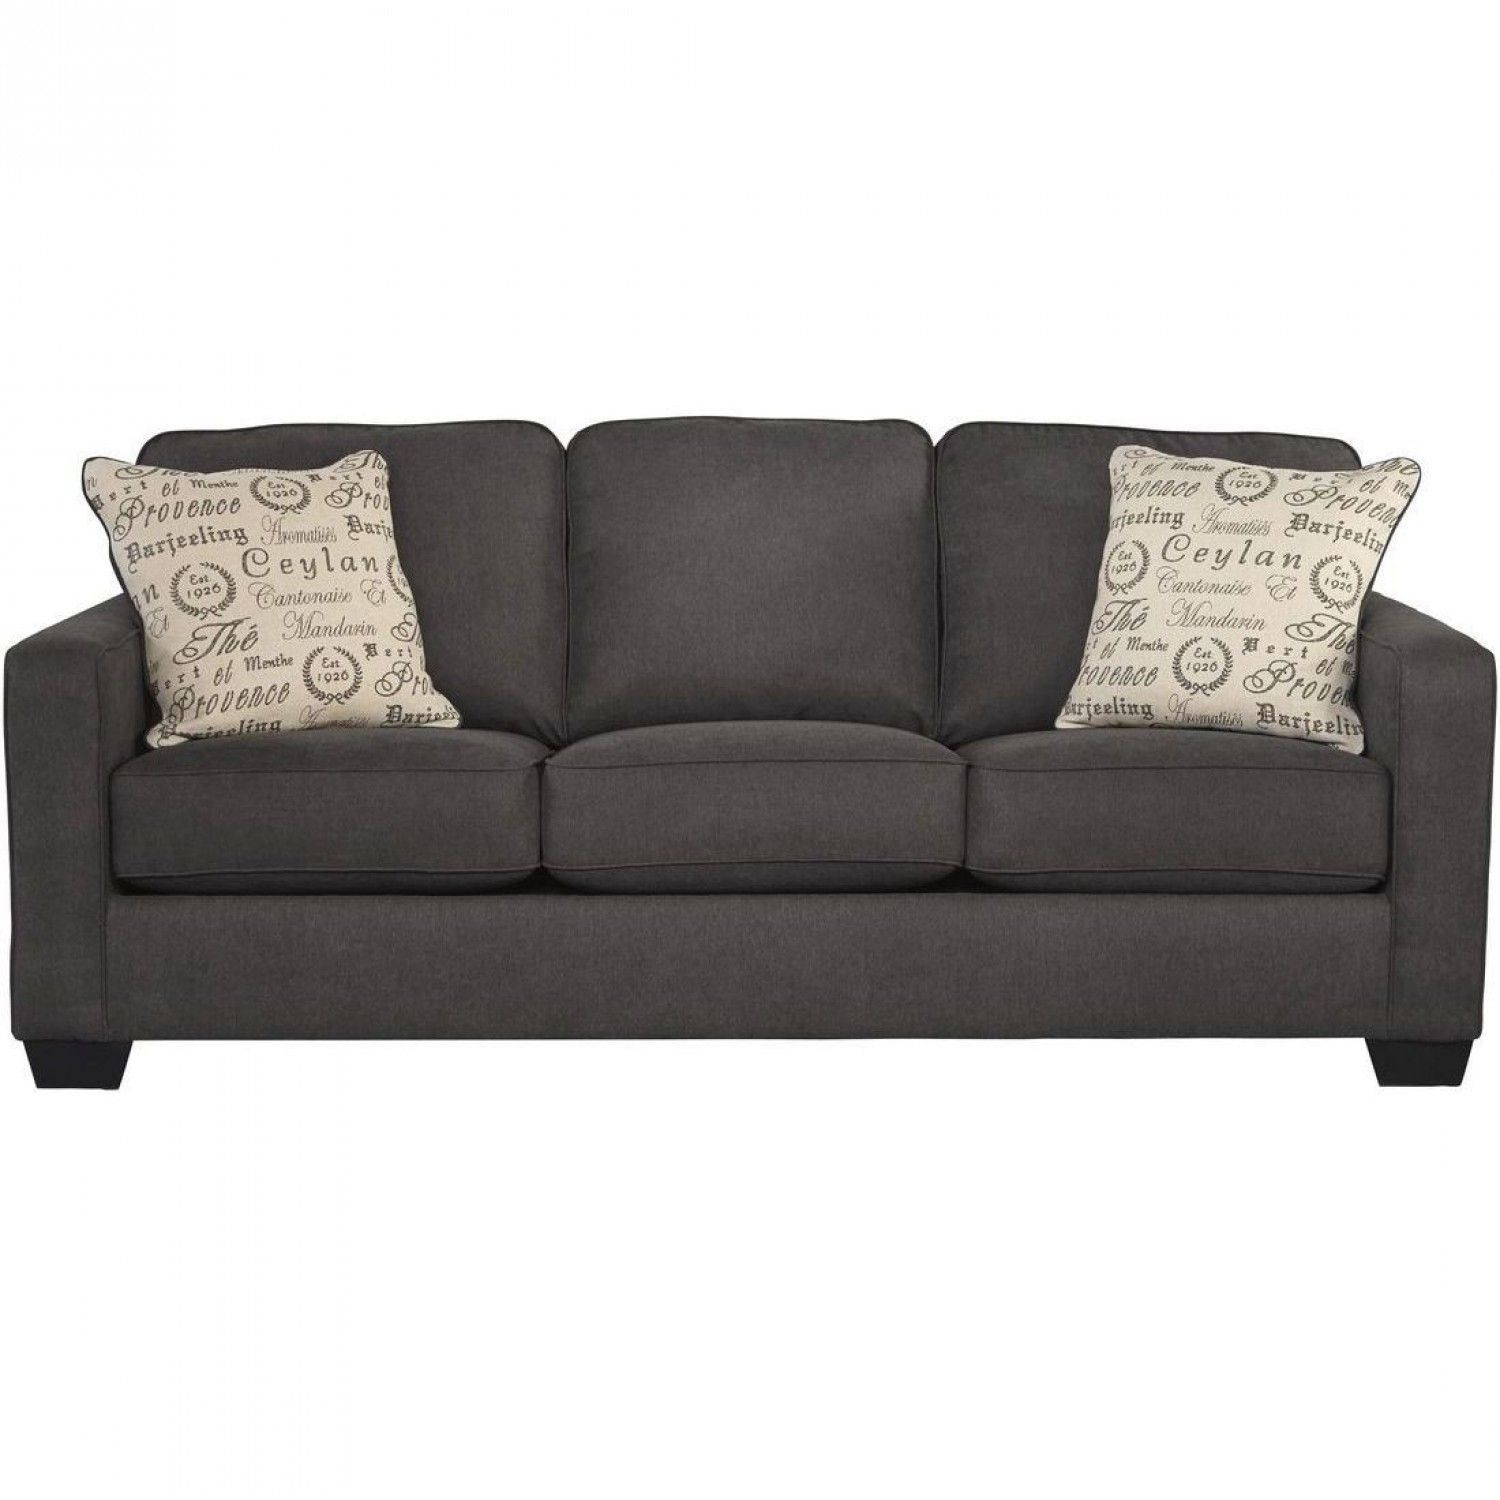 Ashley Furniture Alenya Sofa in Charcoal